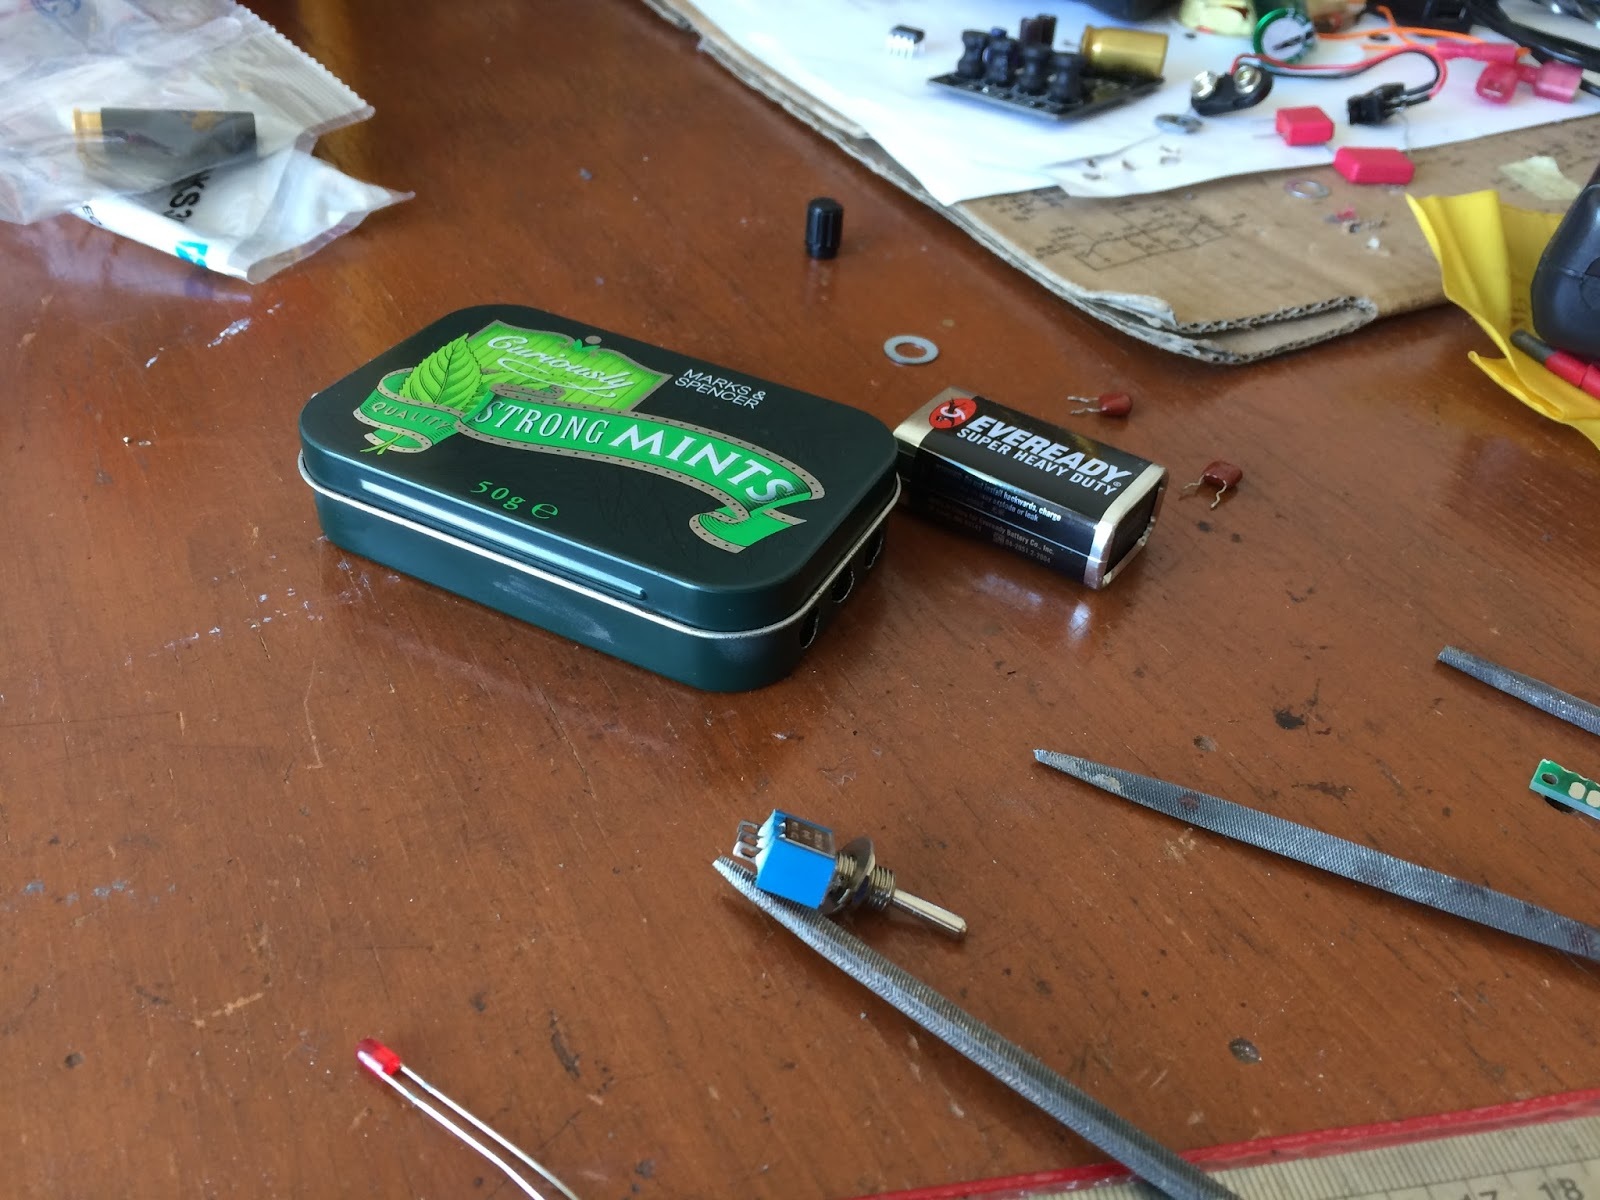 The Orronoco Audio Diy Building Another Cmoy Headphone Amplifier First Thing To Do Is Measure Tin Case And Follow By Pcb Along With Input Output Connectors This Step Quite Critical Due Every Layout Will